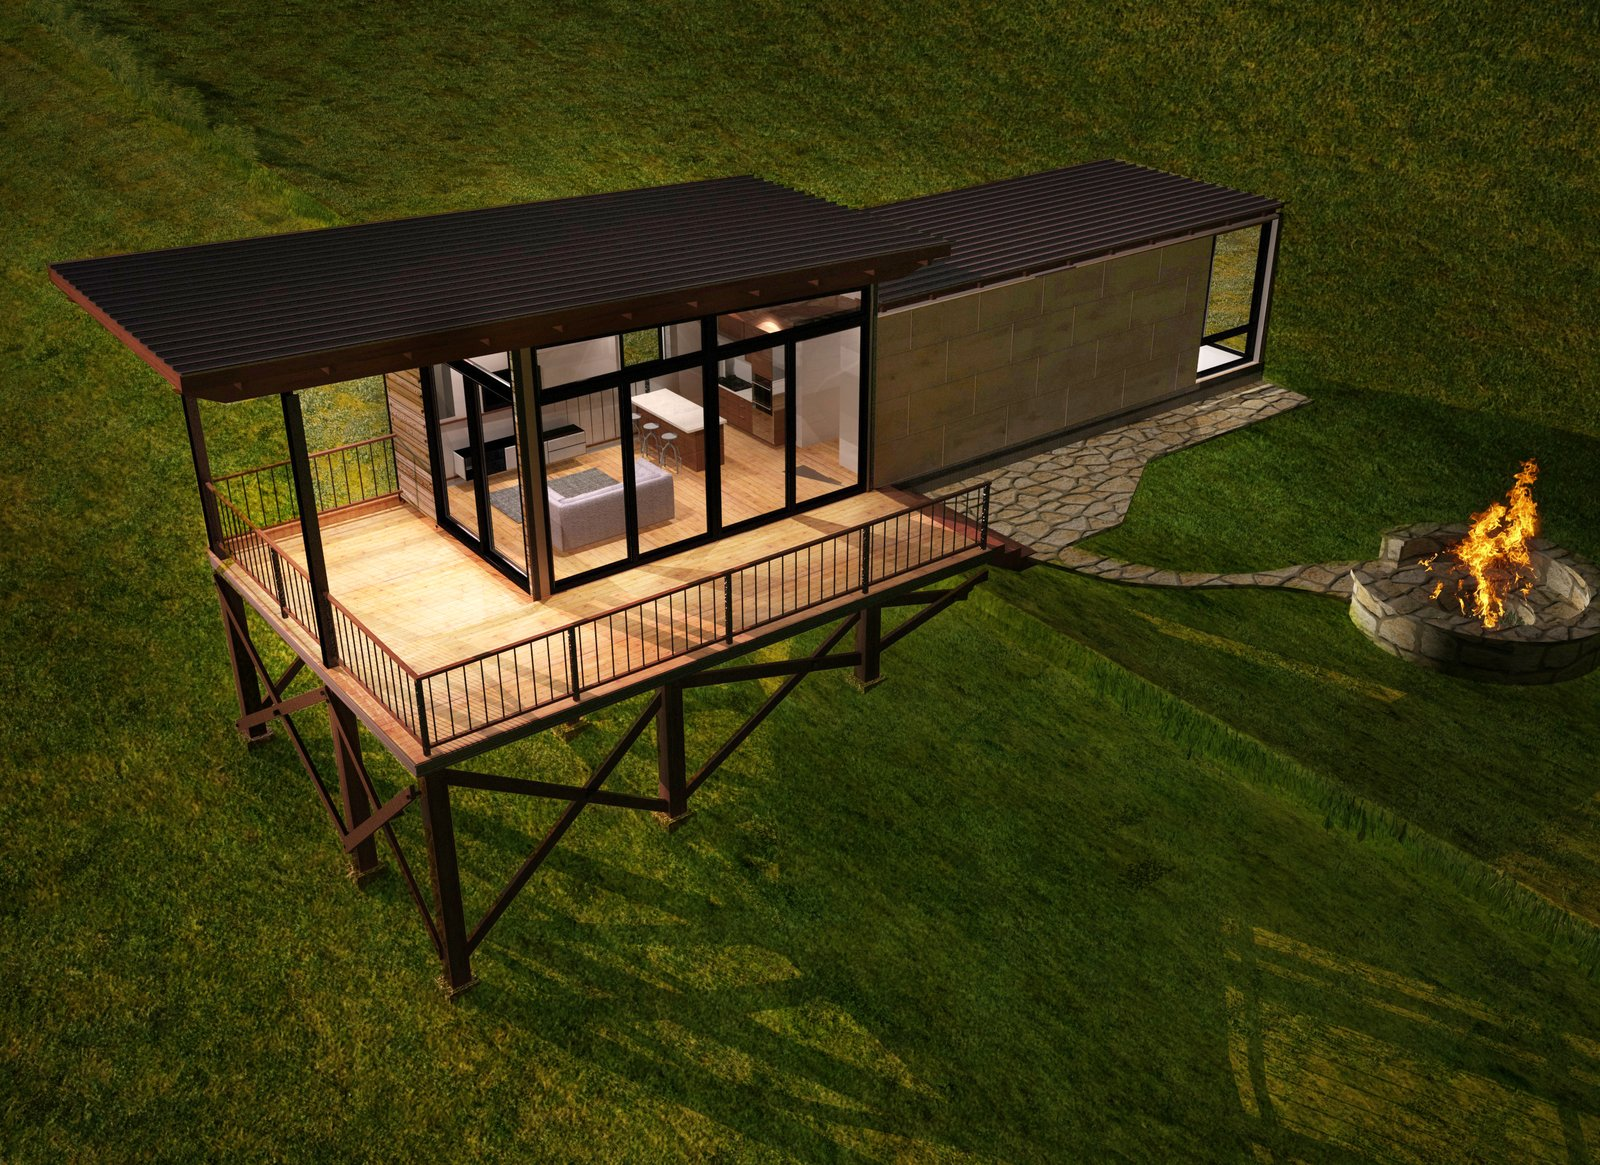 An elevated rendering of the Lookout model.